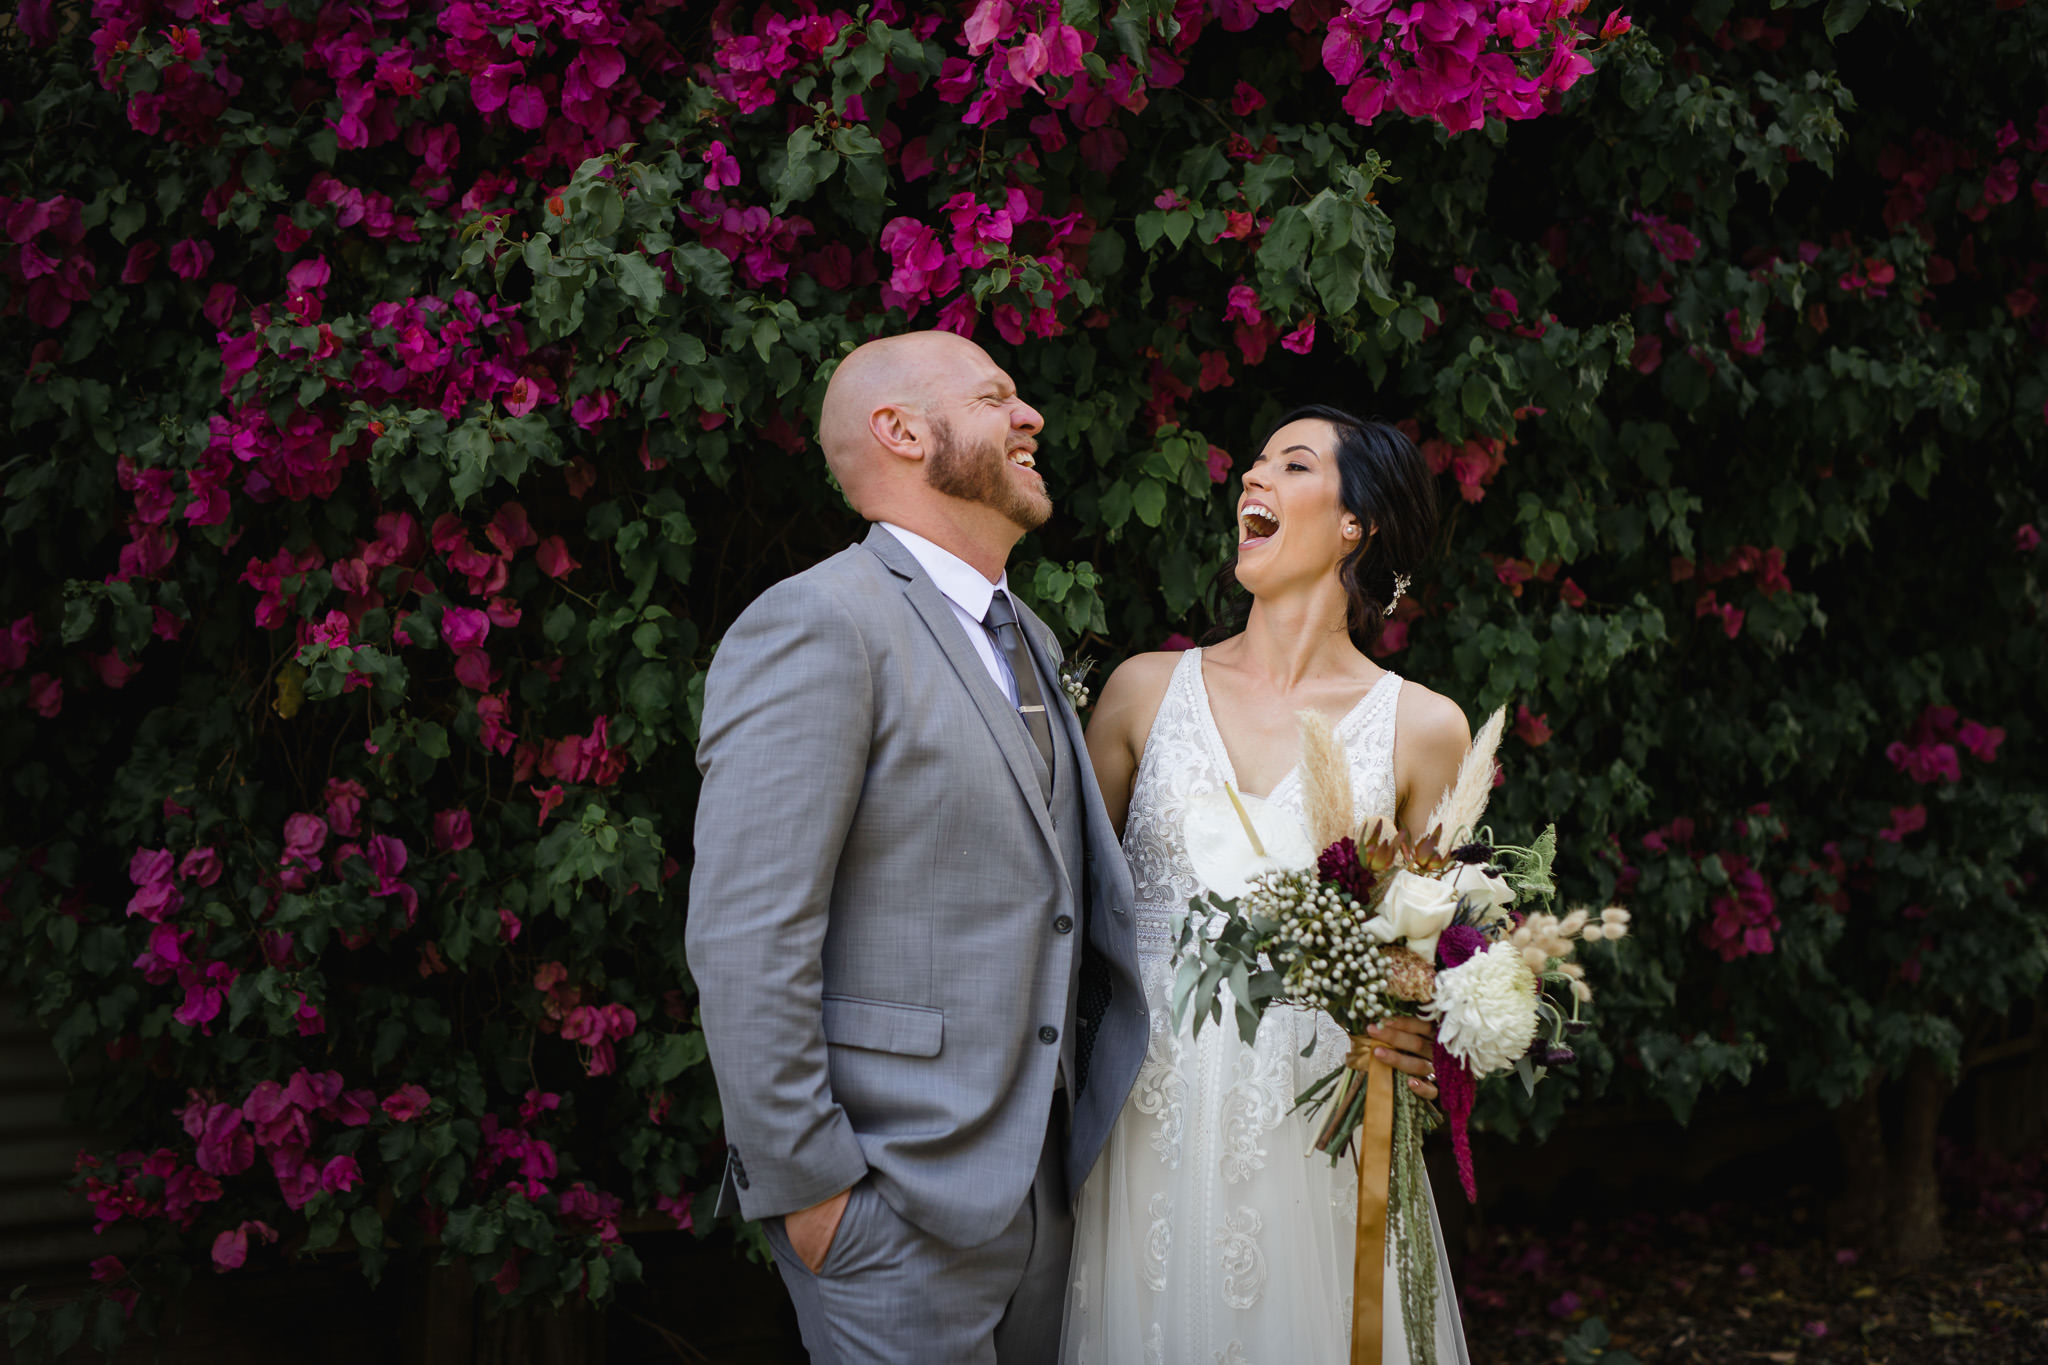 Bride and groom laughing in front of purple Bougainvillea flowers at their wedding at Leeuwin Estate in Margaret River